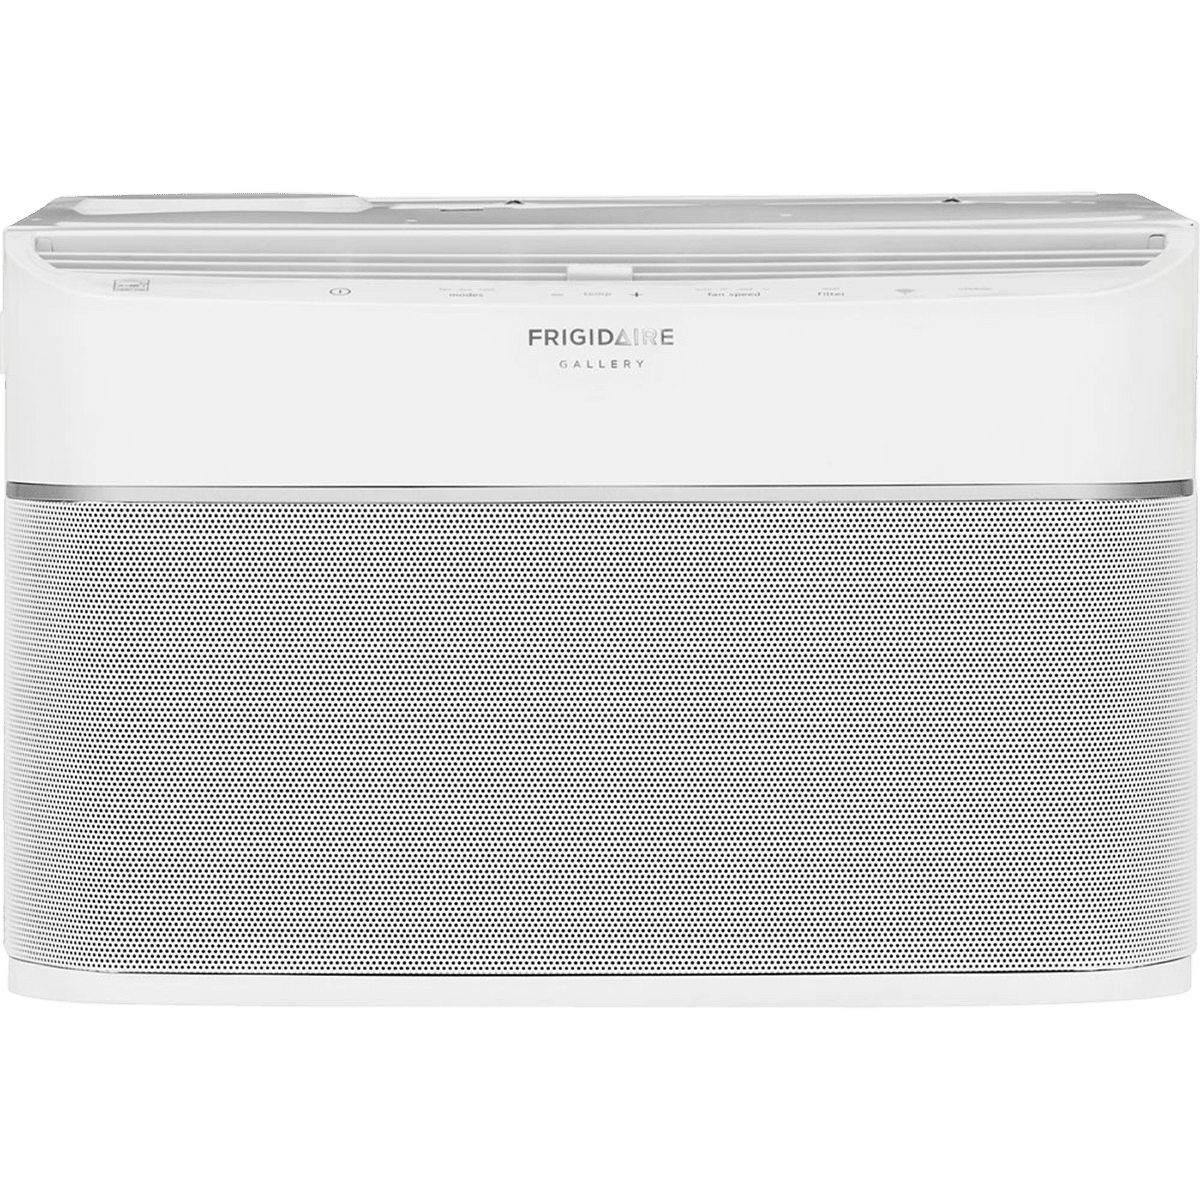 Frigidaire FGRC1244T1 12,000 BTU Window Air Conditioner fr6398